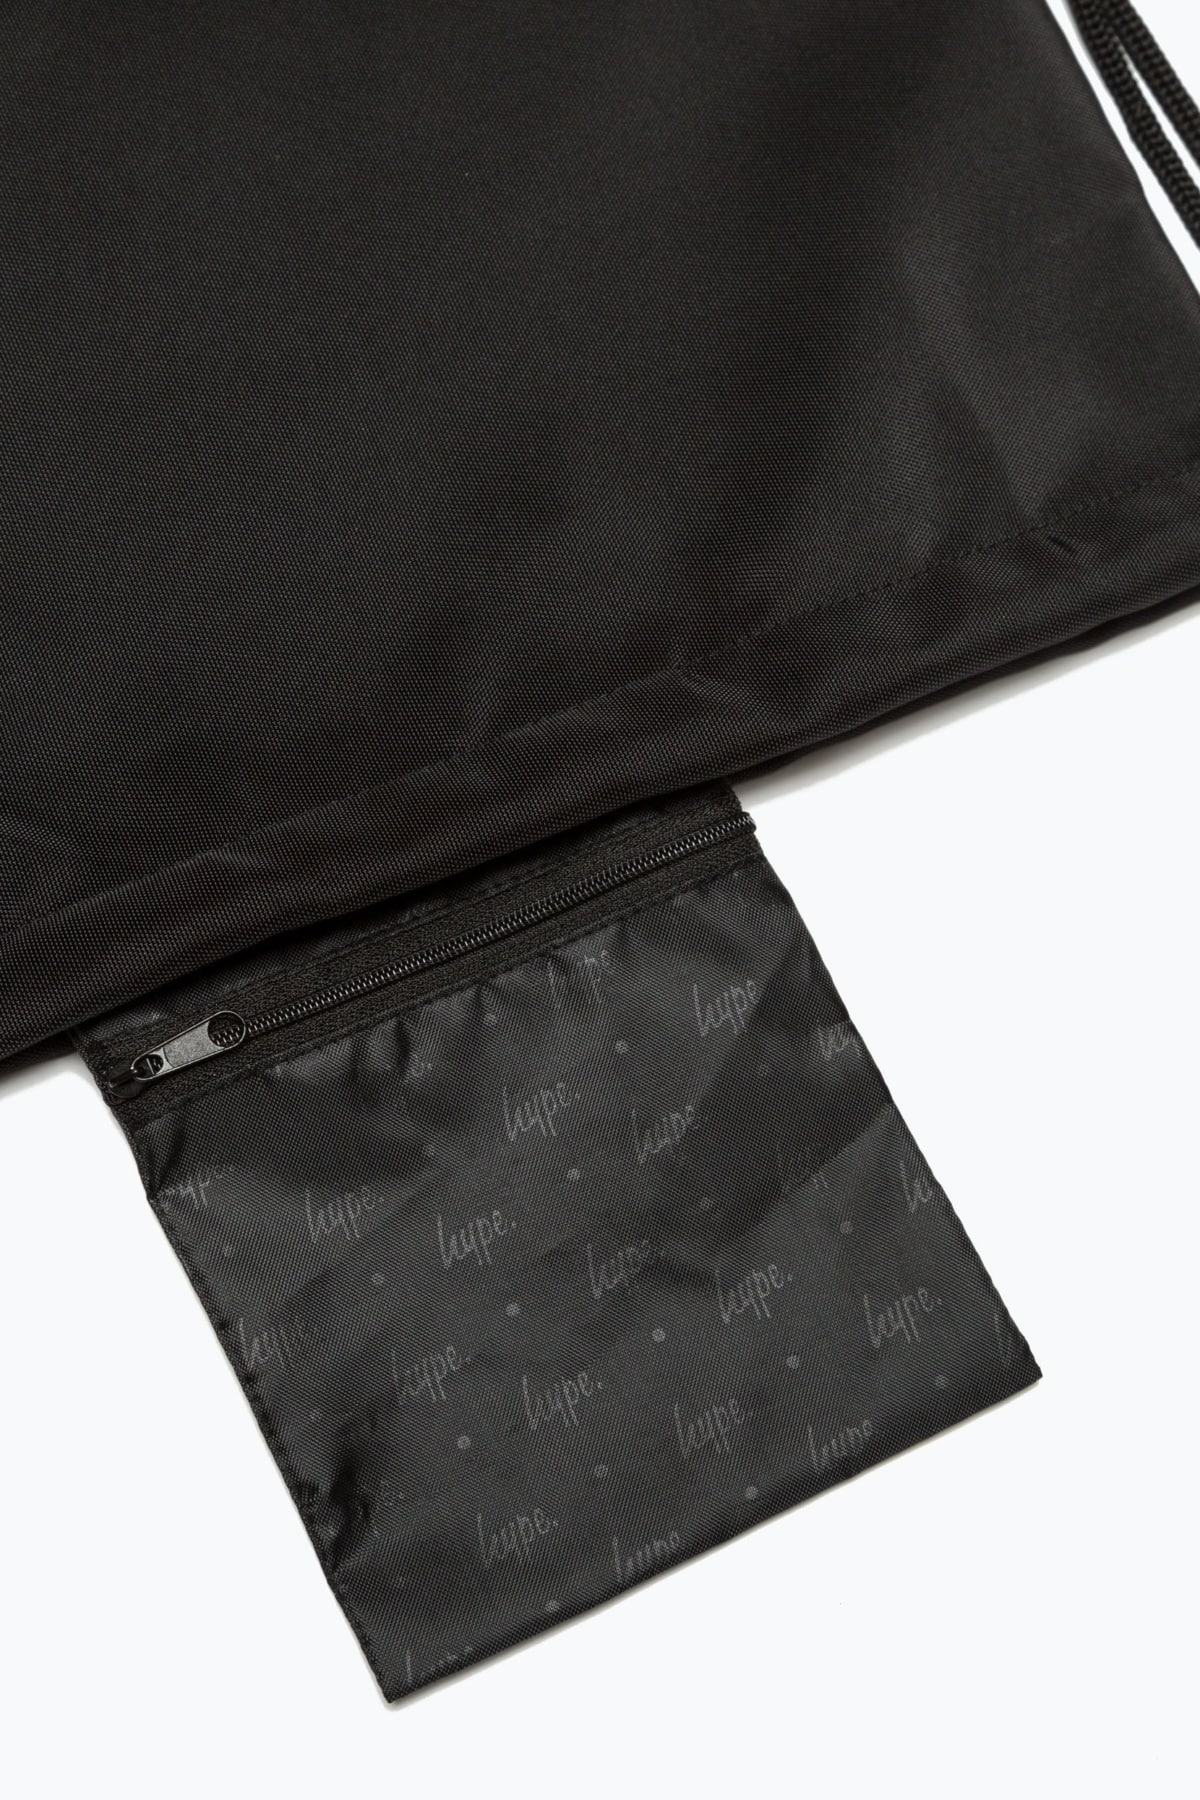 HYPE Black/White Taping Drawstring